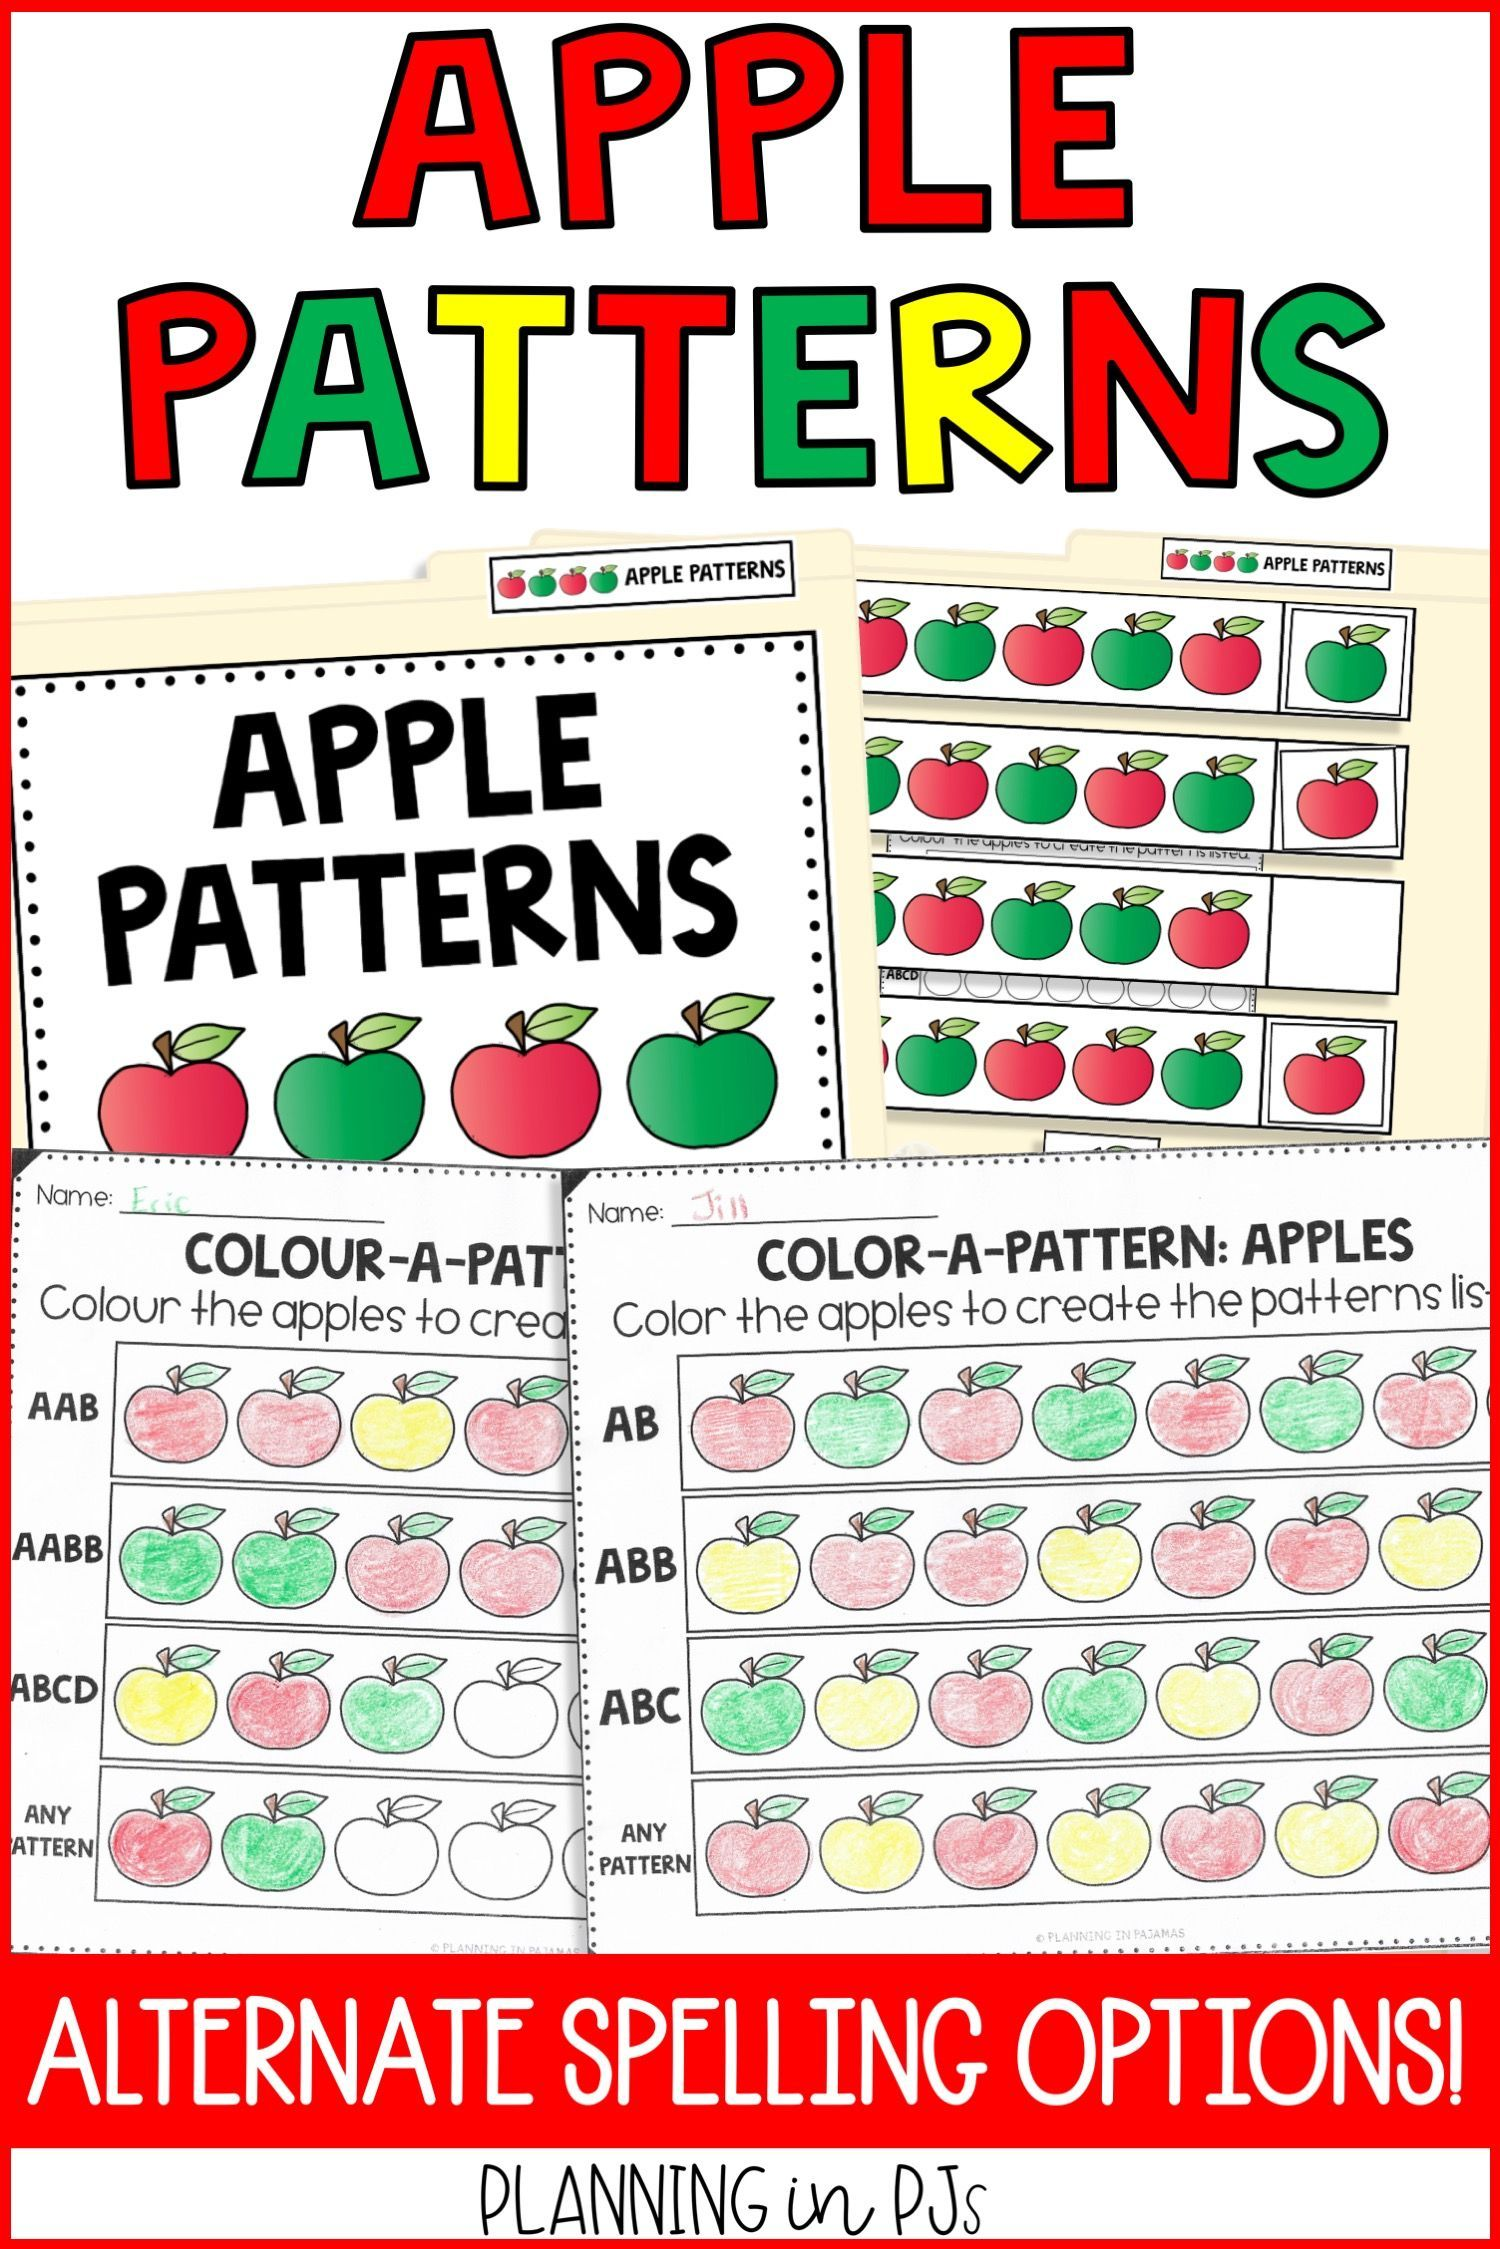 Apple Pattern Activities To Include In A Fall Autumn Theme Includes 2 Worksheets Asking Students To Pattern Activities Preschool Apple Theme Pattern Worksheet [ 2249 x 1500 Pixel ]